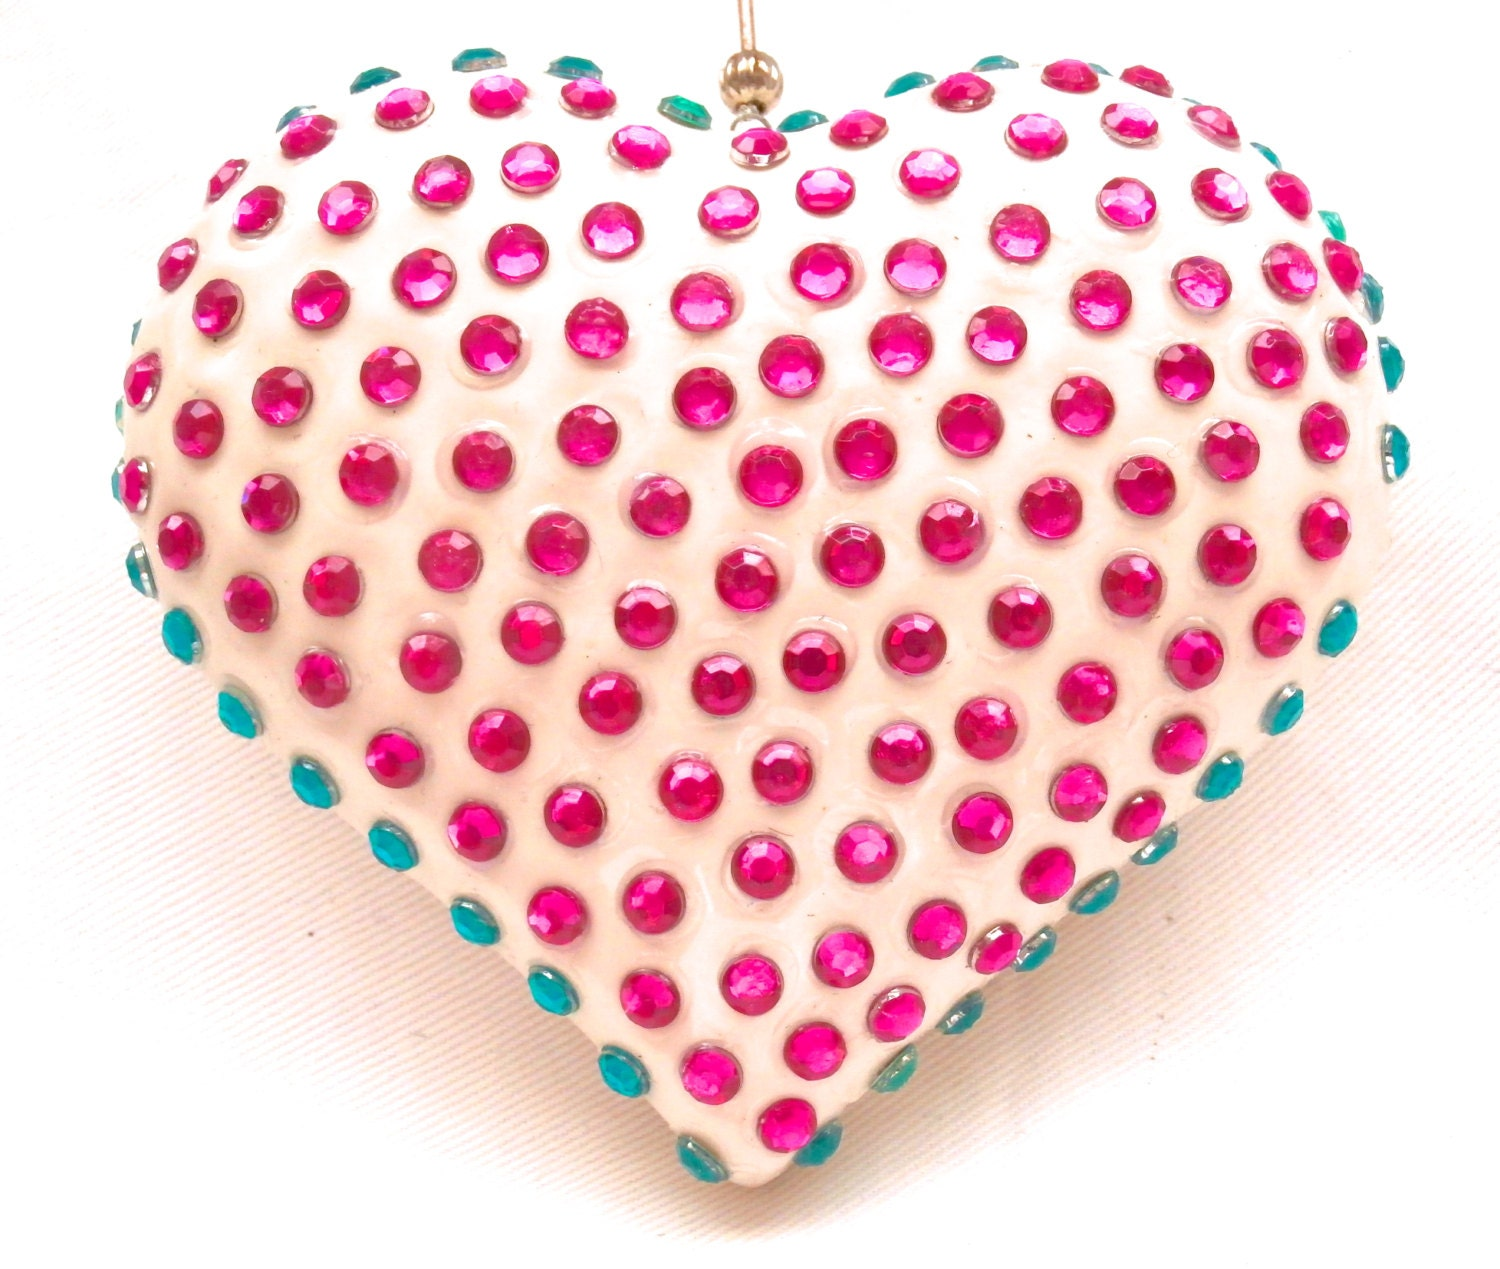 Hanging Heart Home Decor Pink And Green Mosaic Ceramic